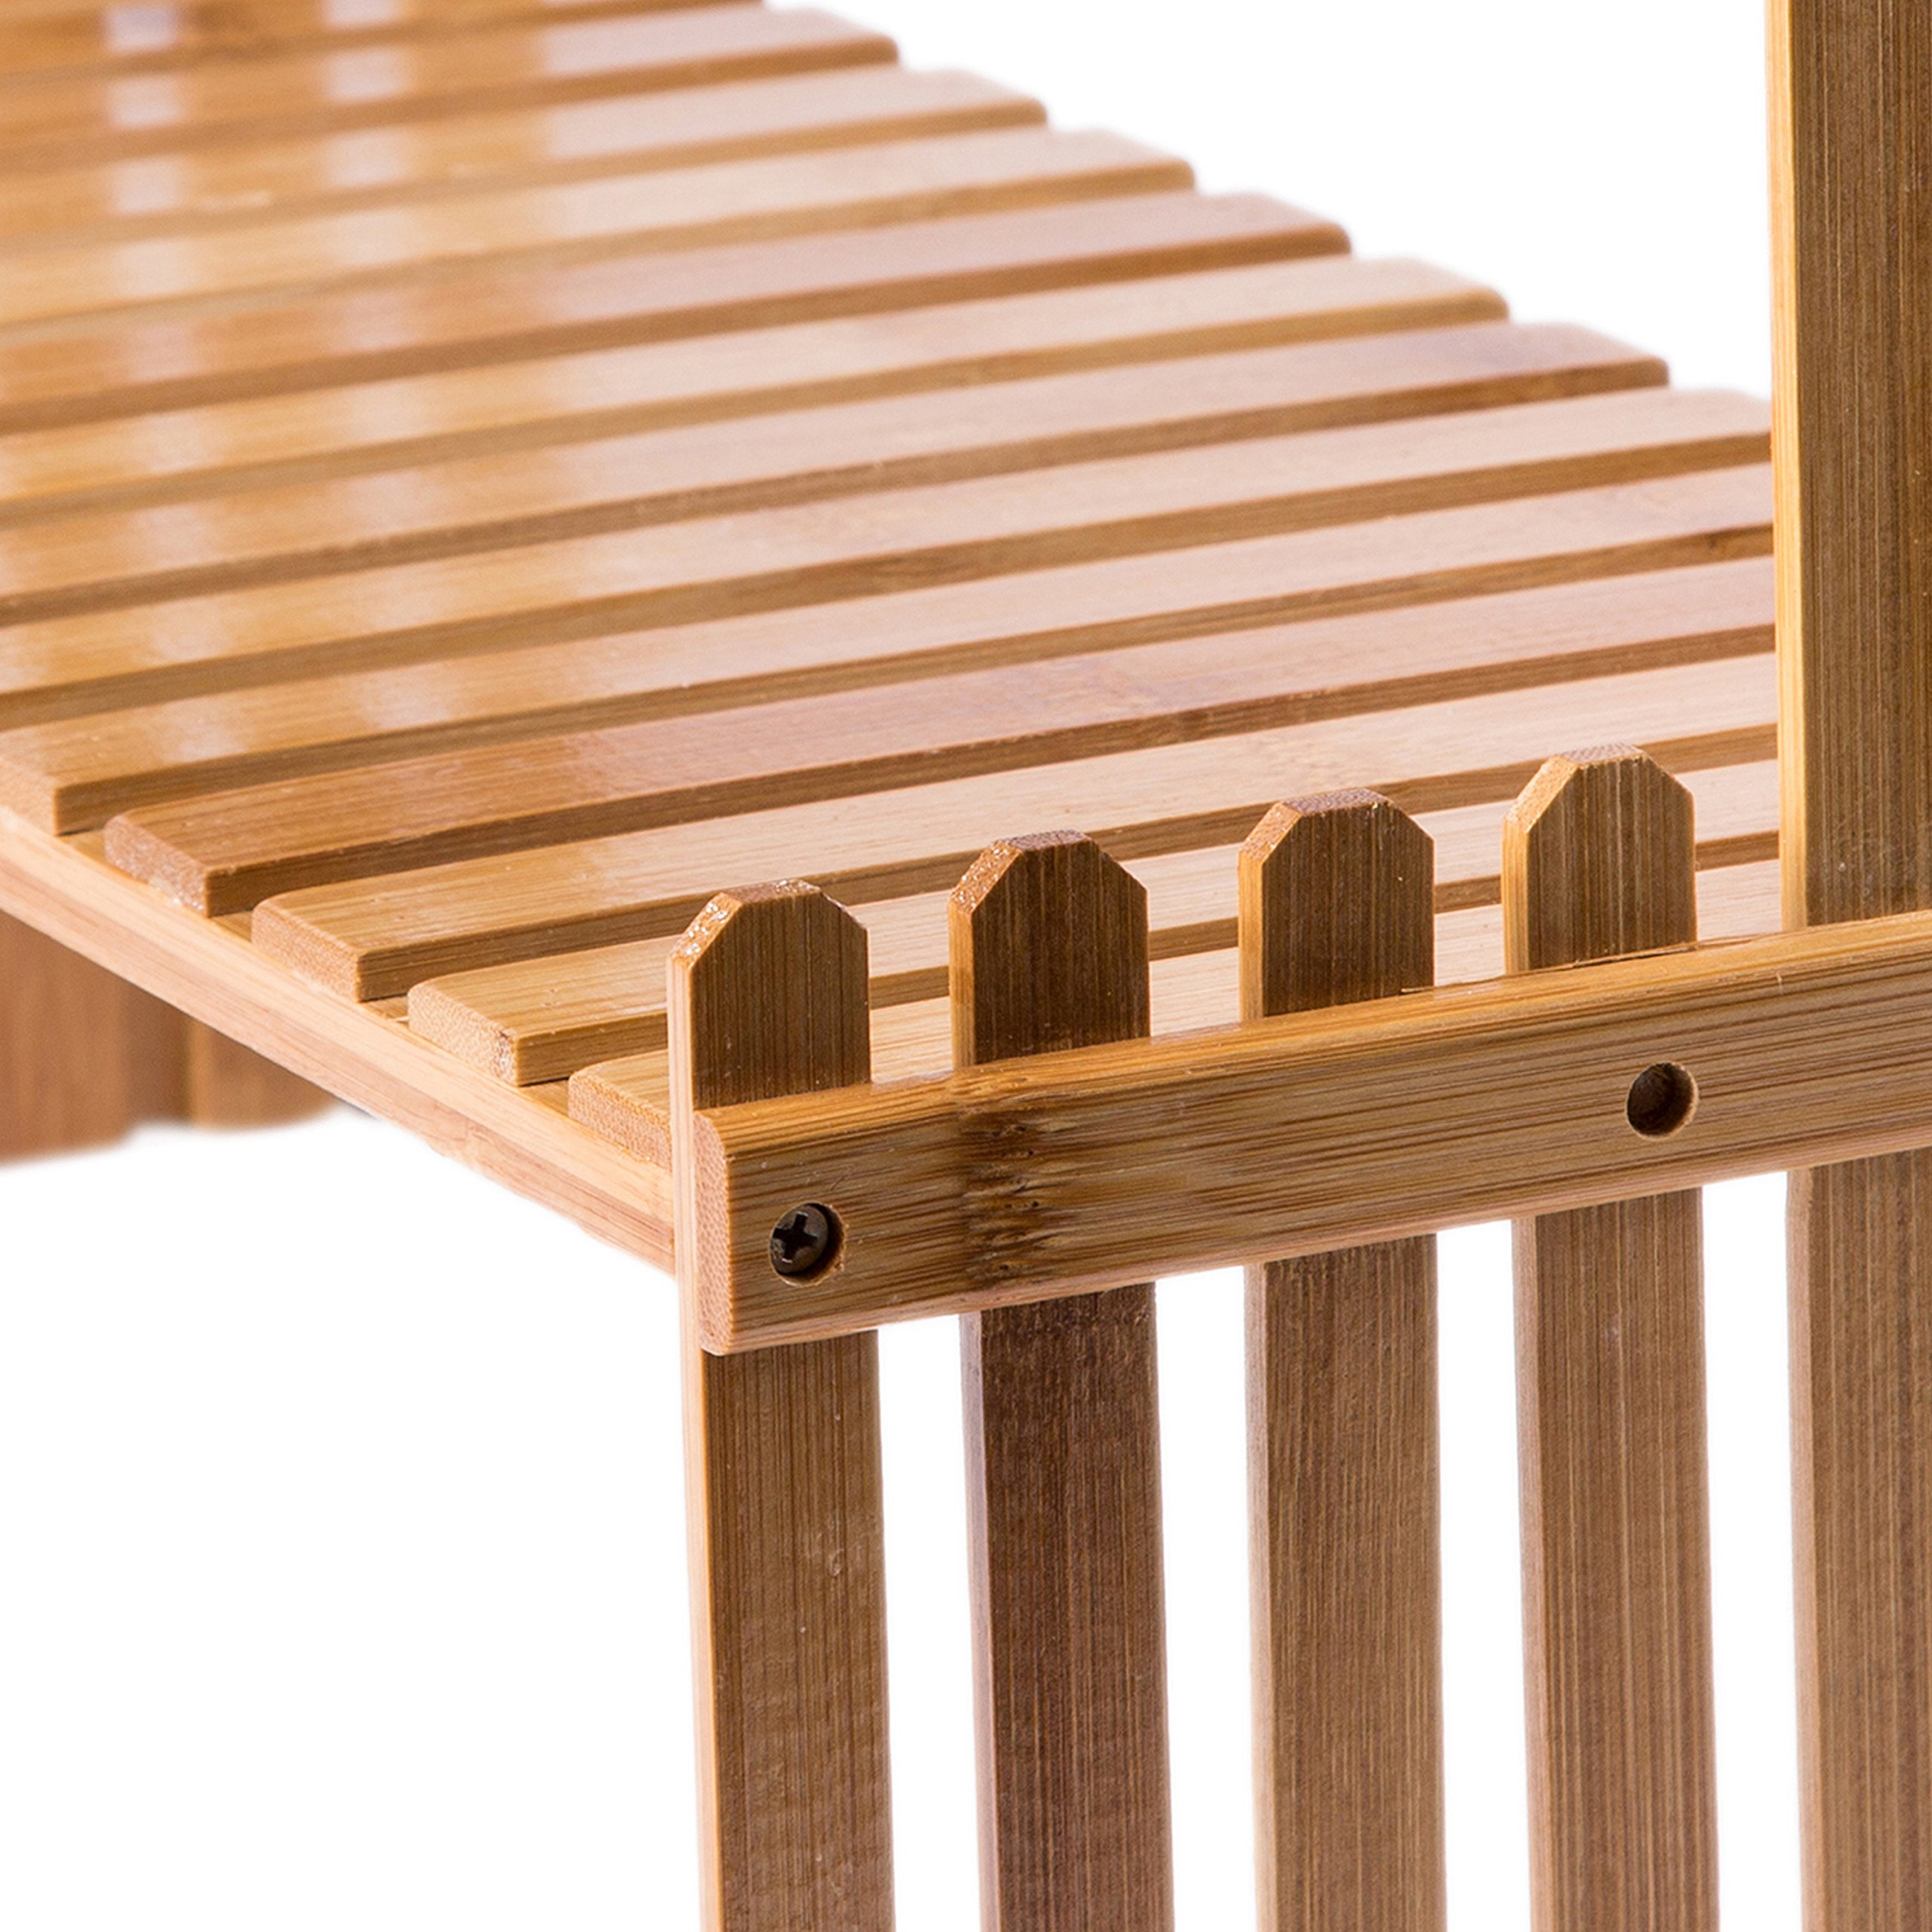 MyGift Tabletop Natural Bamboo Plant Stand, 2 Tier Desktop Shelf Rack, Brown by MyGift (Image #5)